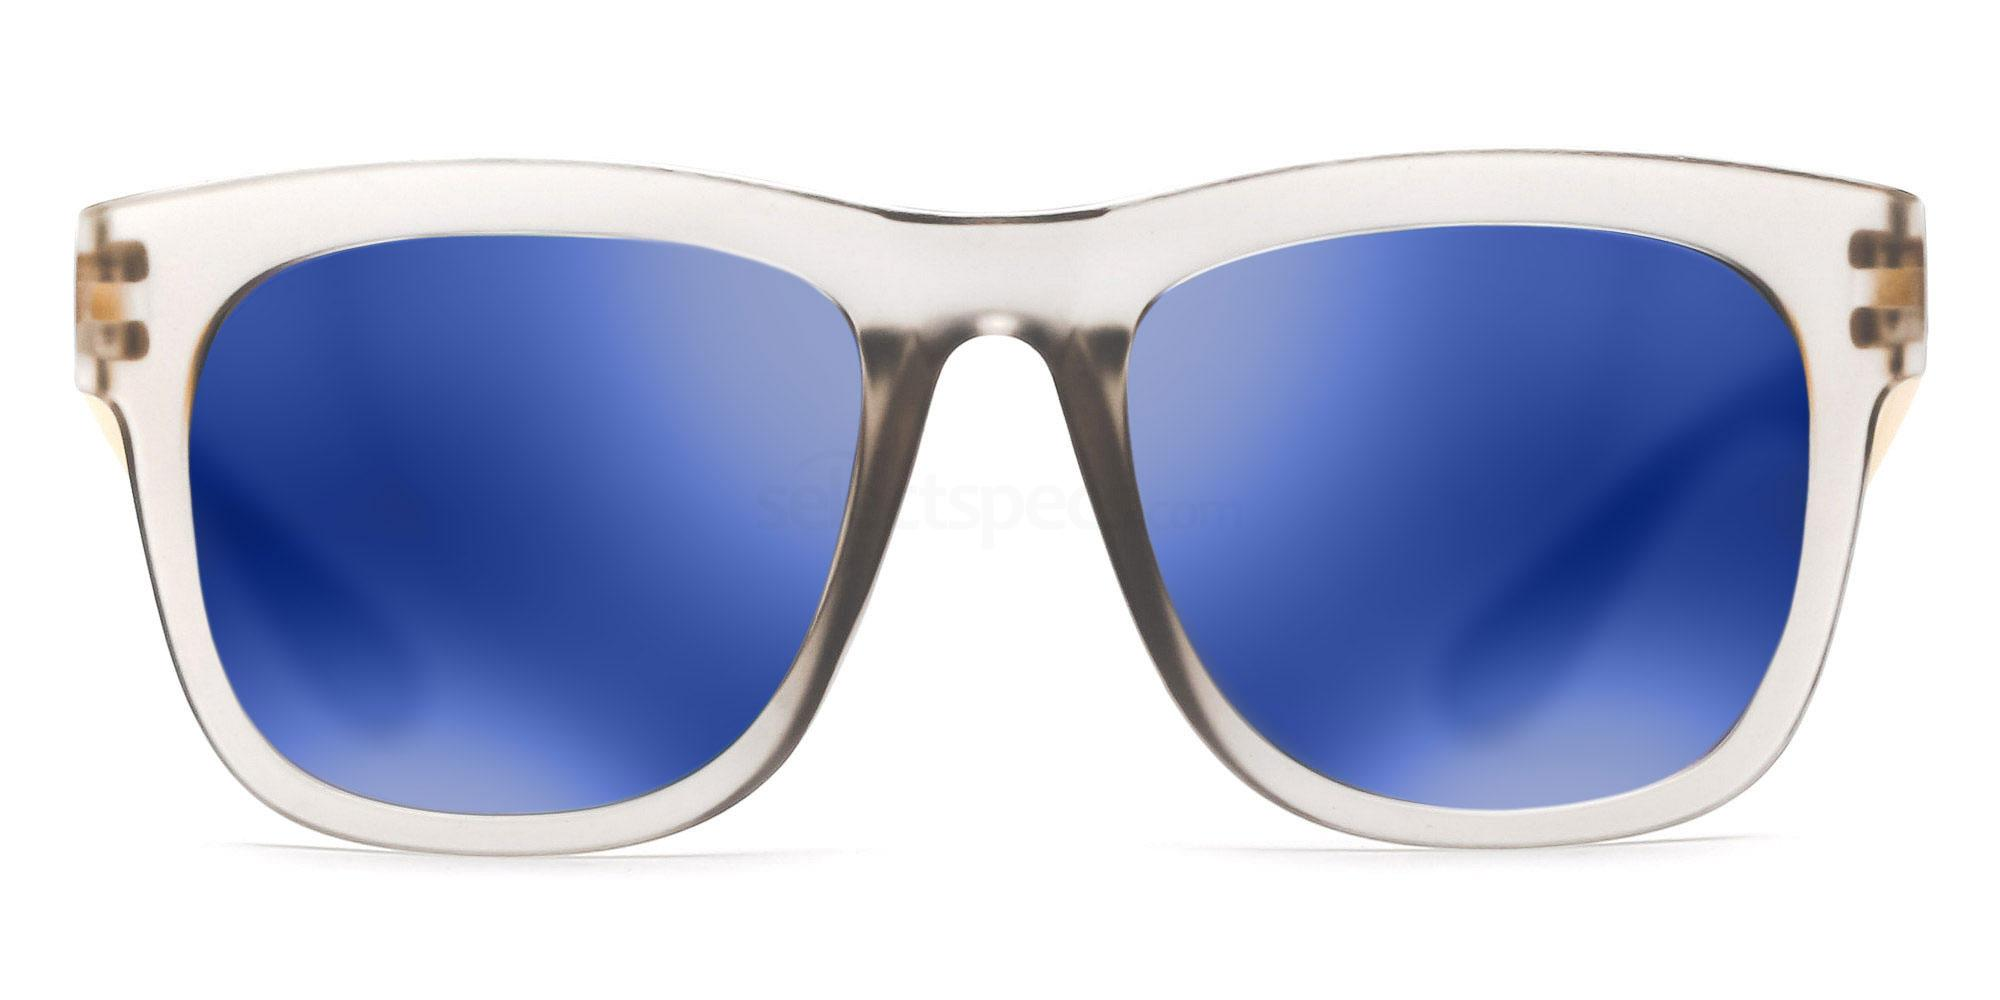 C17 S9199 Sunglasses, Savannah